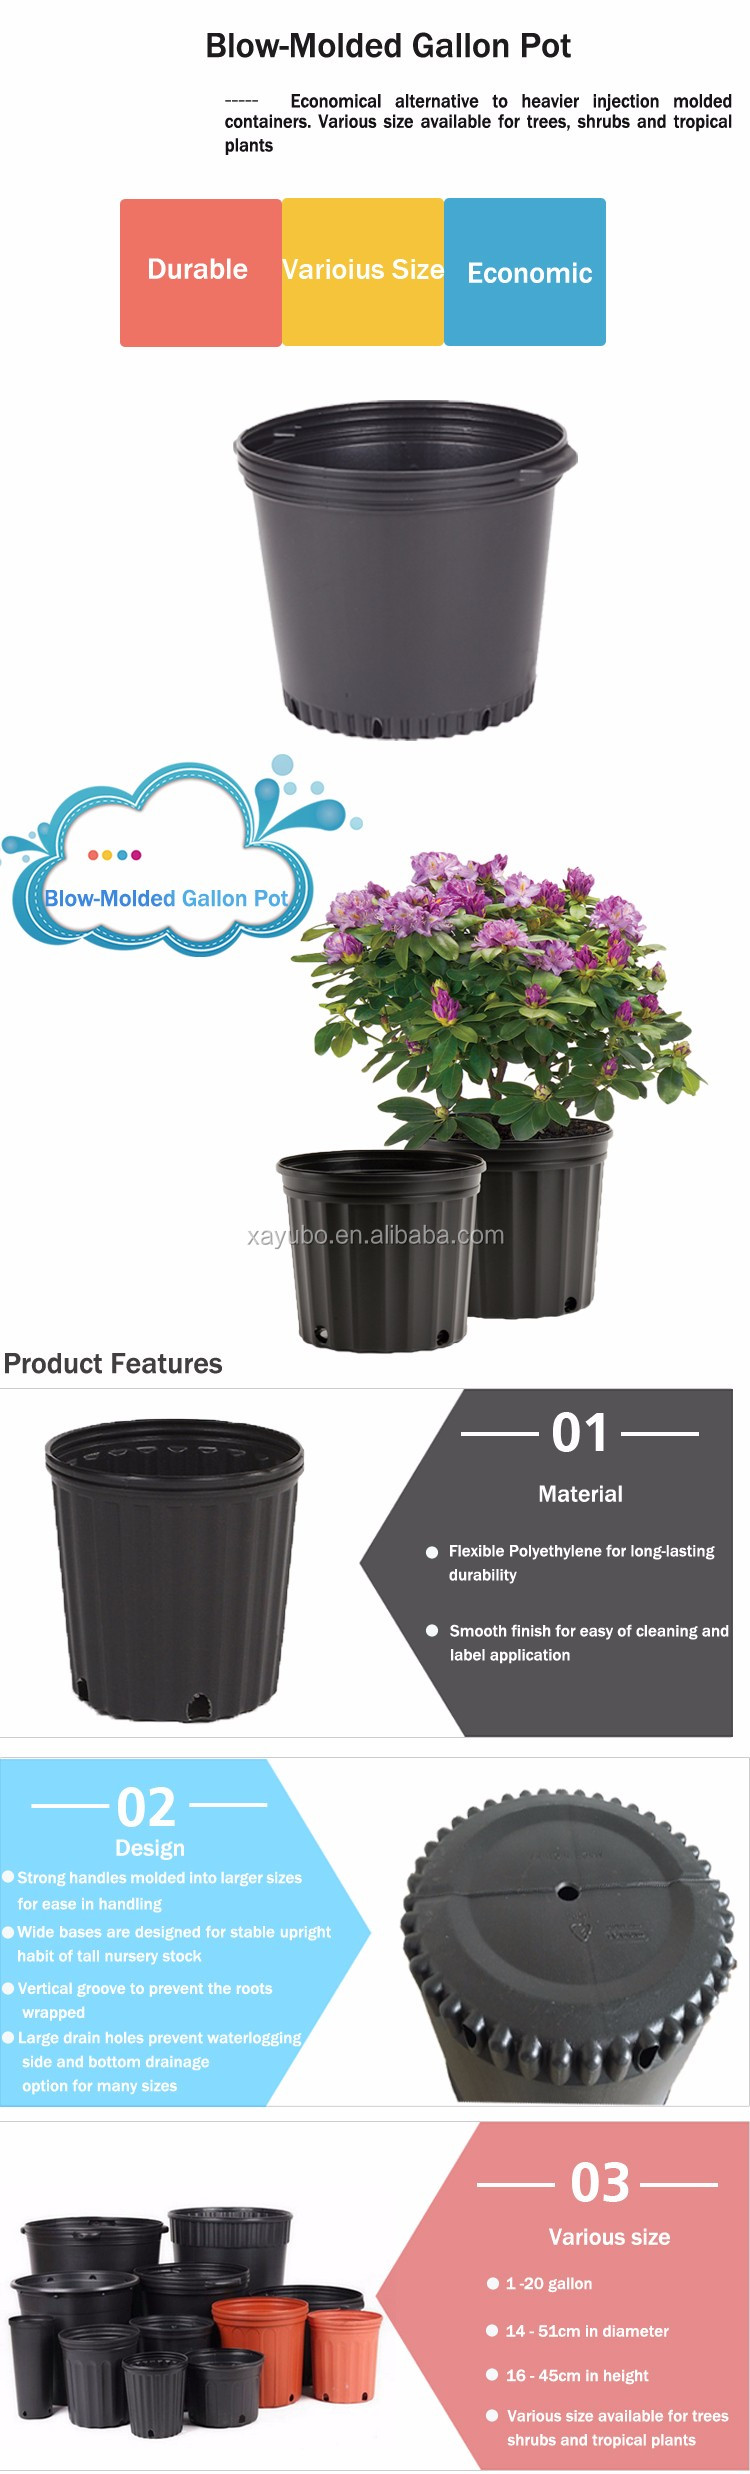 Bulk round plastic black flower pot nursery pot 15 gallon tree pot, container for plams